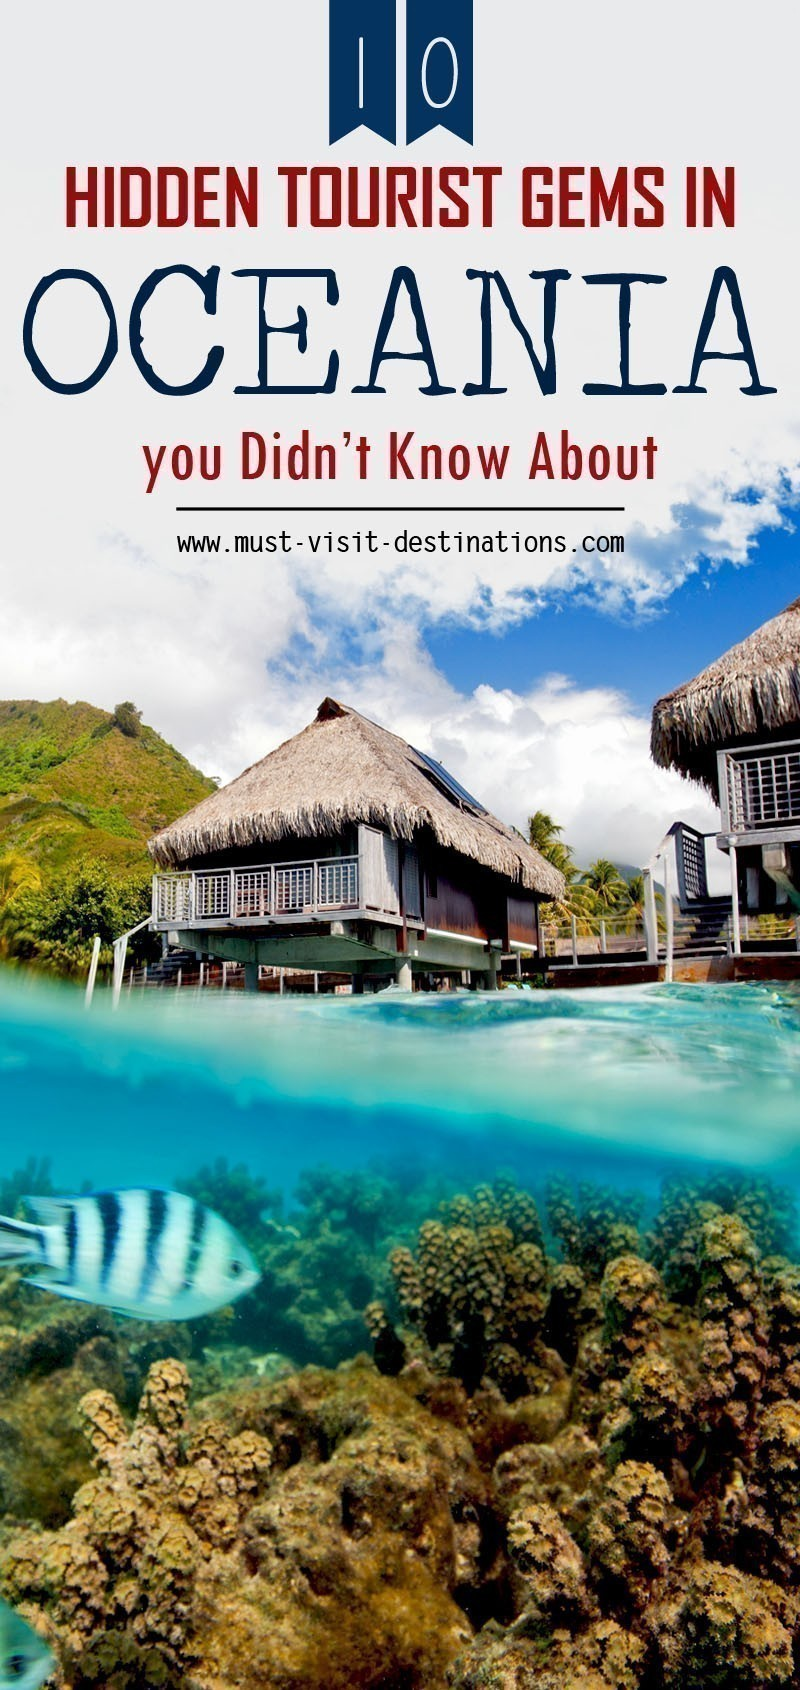 10 Hidden Tourist Gems In Oceania You Didn't Know About #oceania #travel